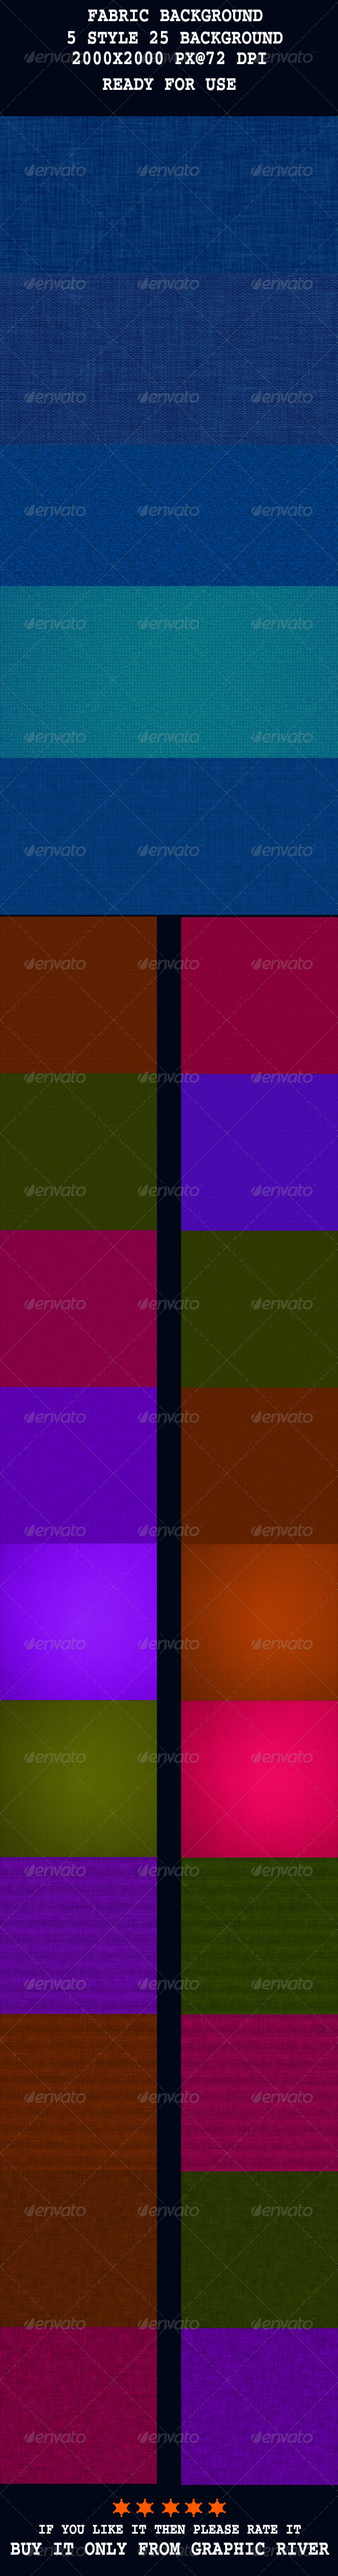 Fabric Background - Abstract Backgrounds